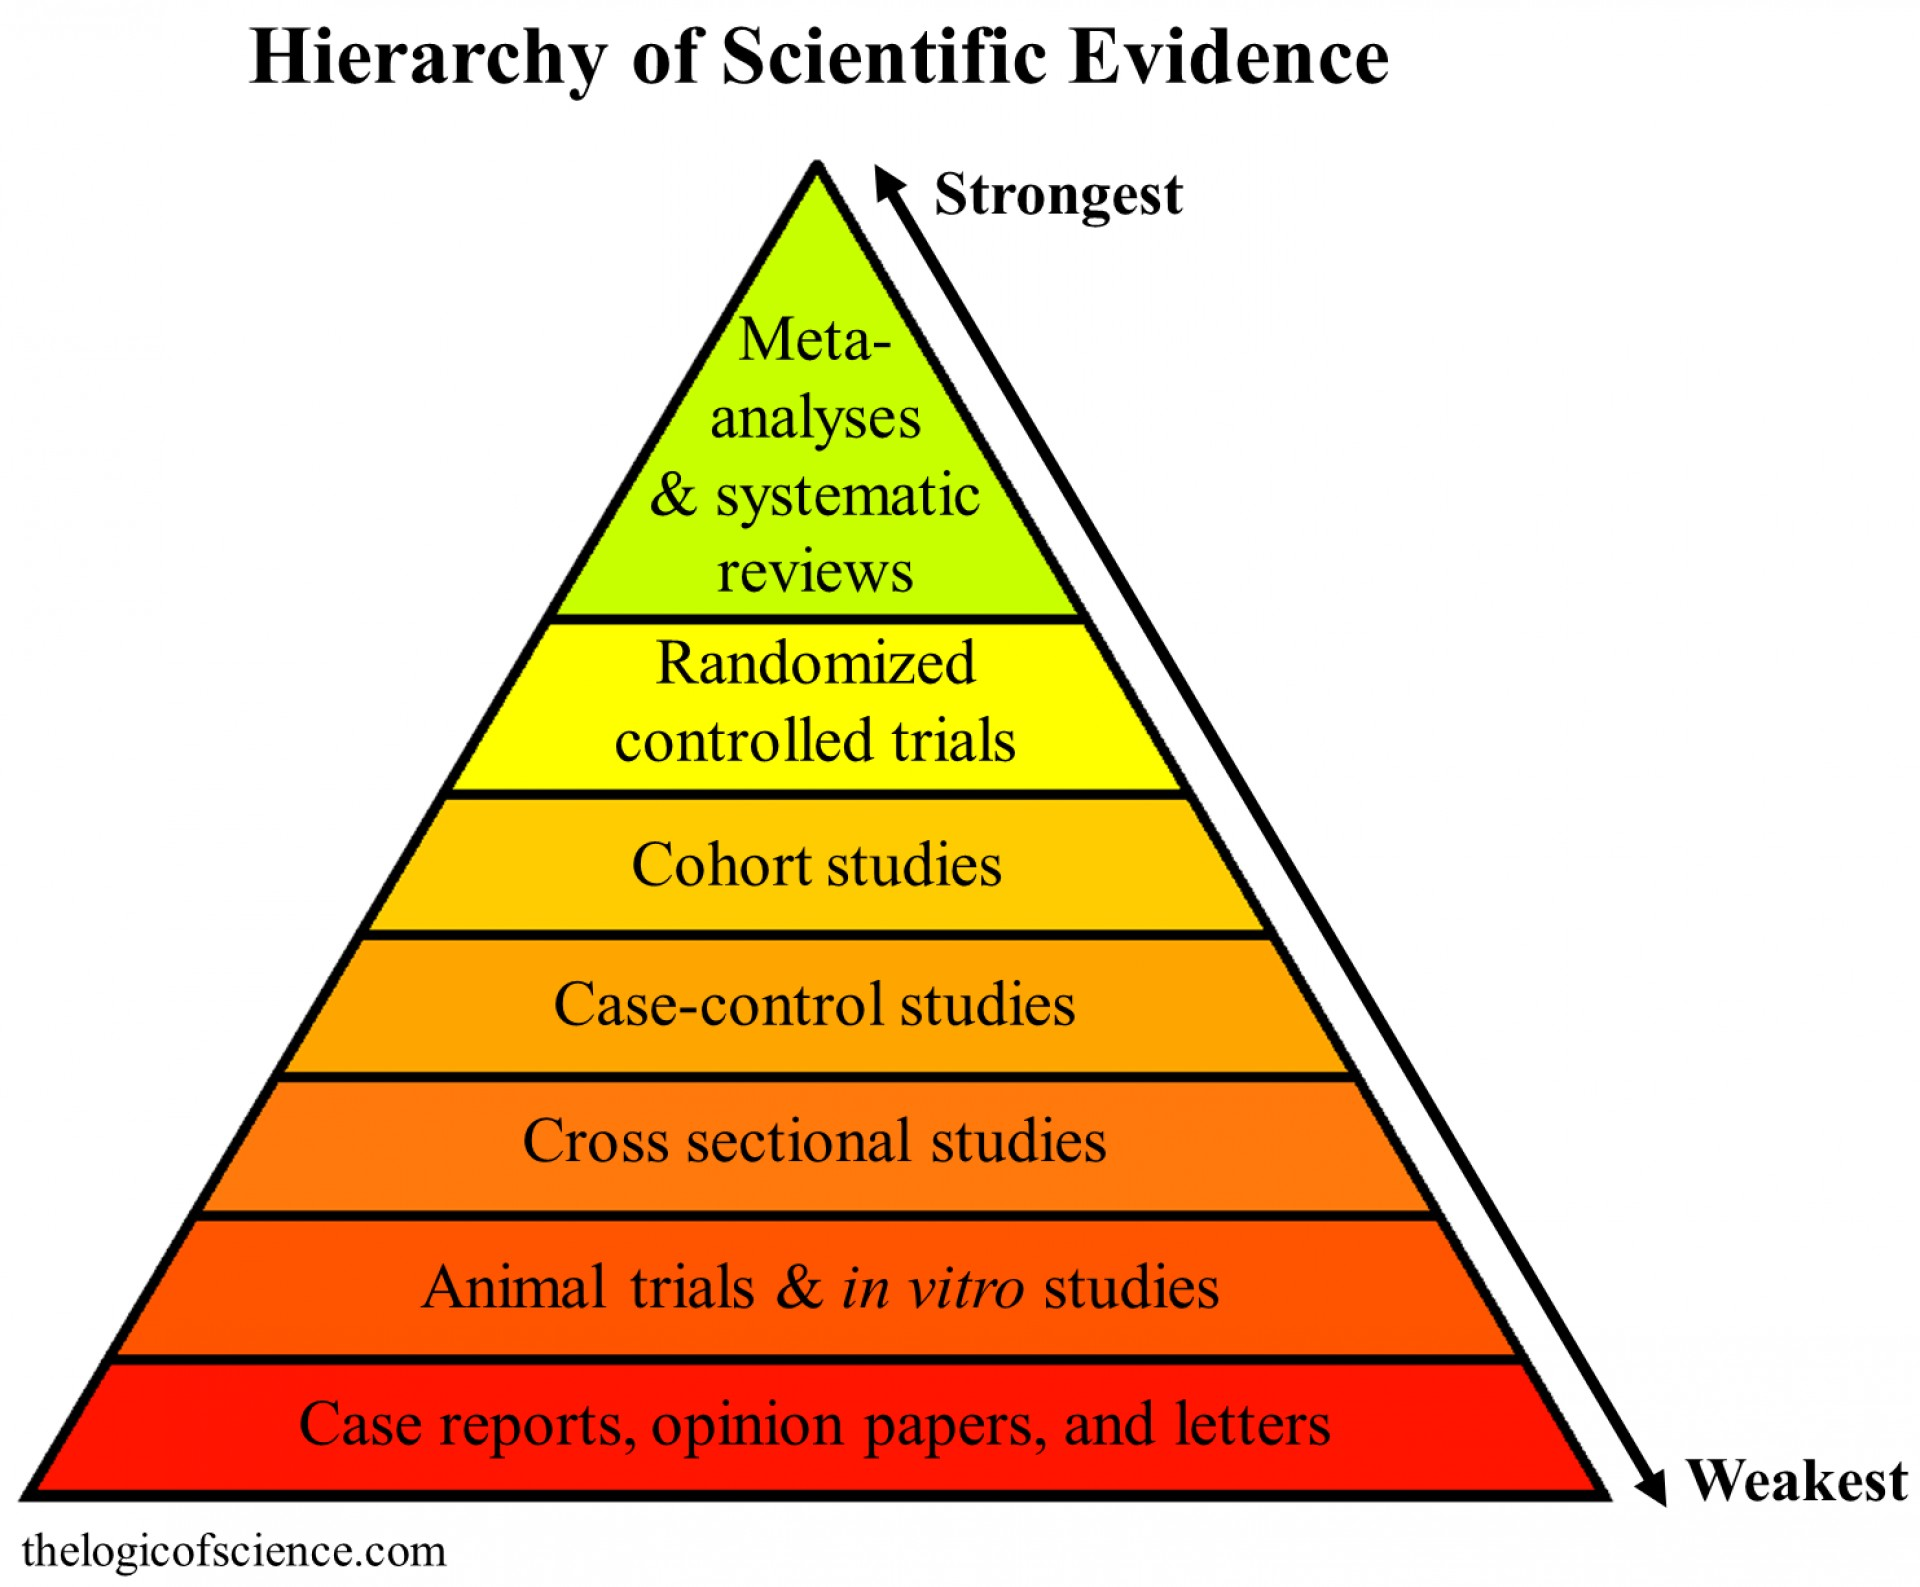 009 Hierarchy Of Evidence No Not1 Autism Research Paper Top Examples 1920